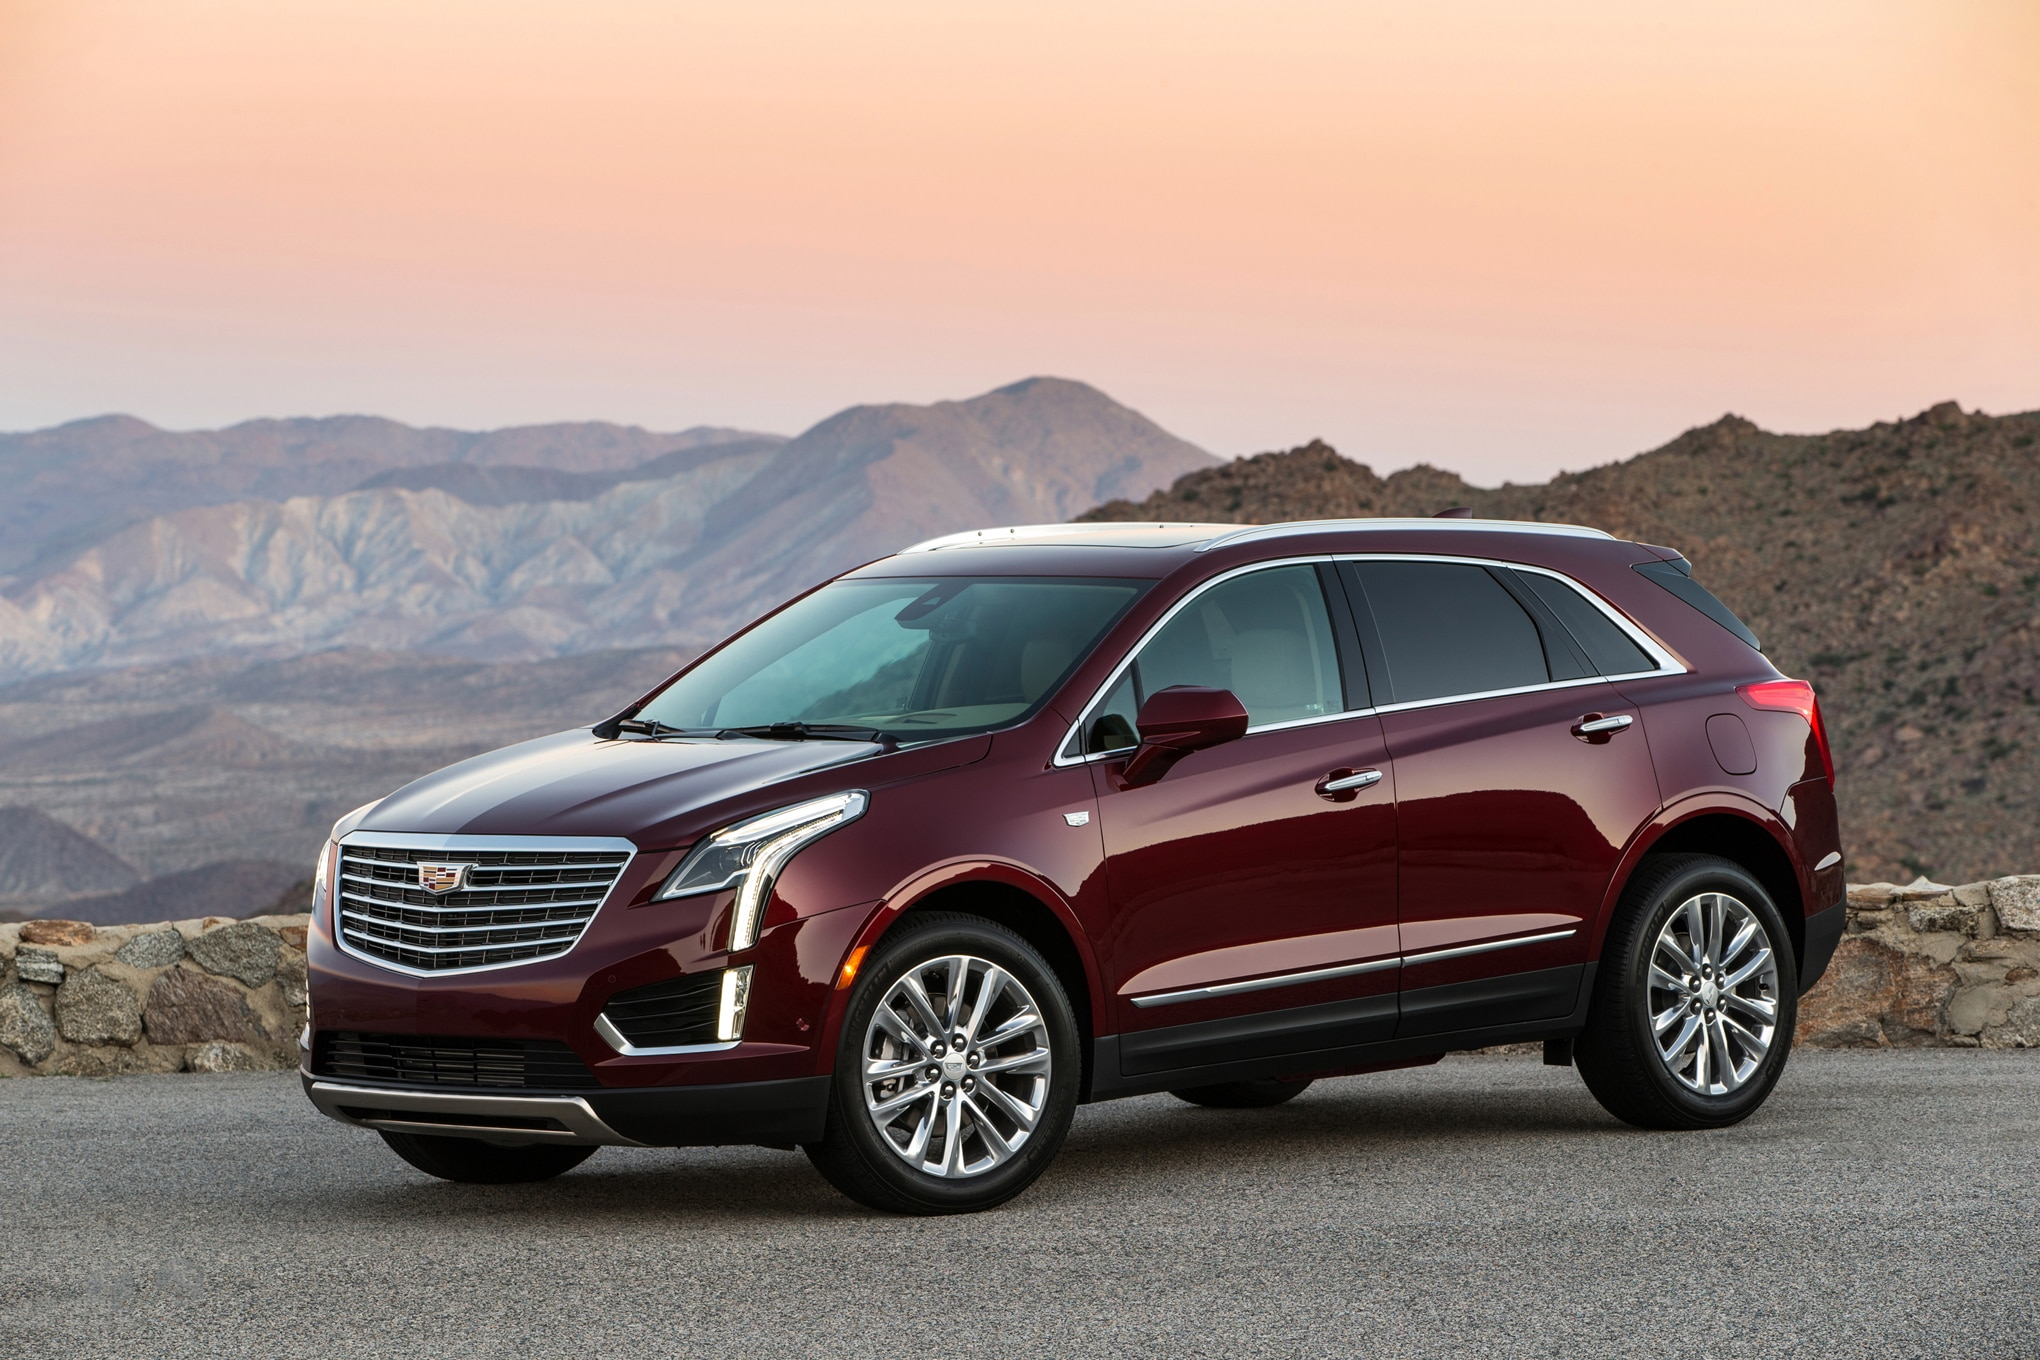 2017 Cadillac XT5 front three quarters cadillac xt5 could soon gain four cylinder turbo automobile magazine Cadillac CTS 2003 Wiring-Diagram at reclaimingppi.co